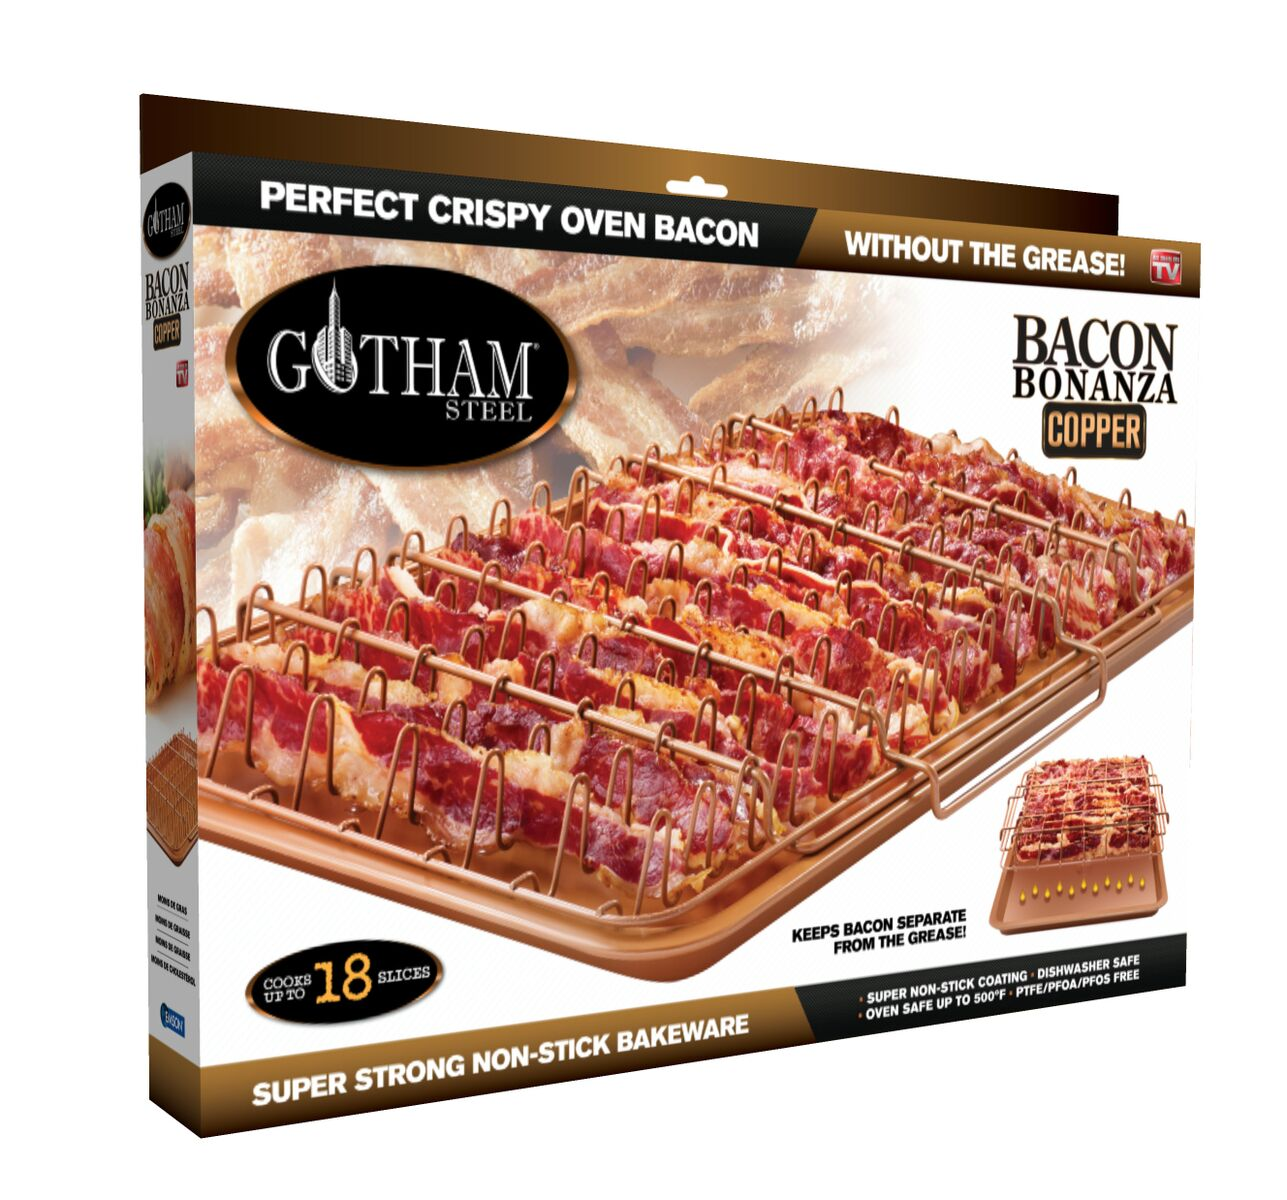 Gotham Steel Nonstick Copper 2-Piece Set XL Healthy Bacon Bonanza Pan with Drip Tray, As Seen on TV!